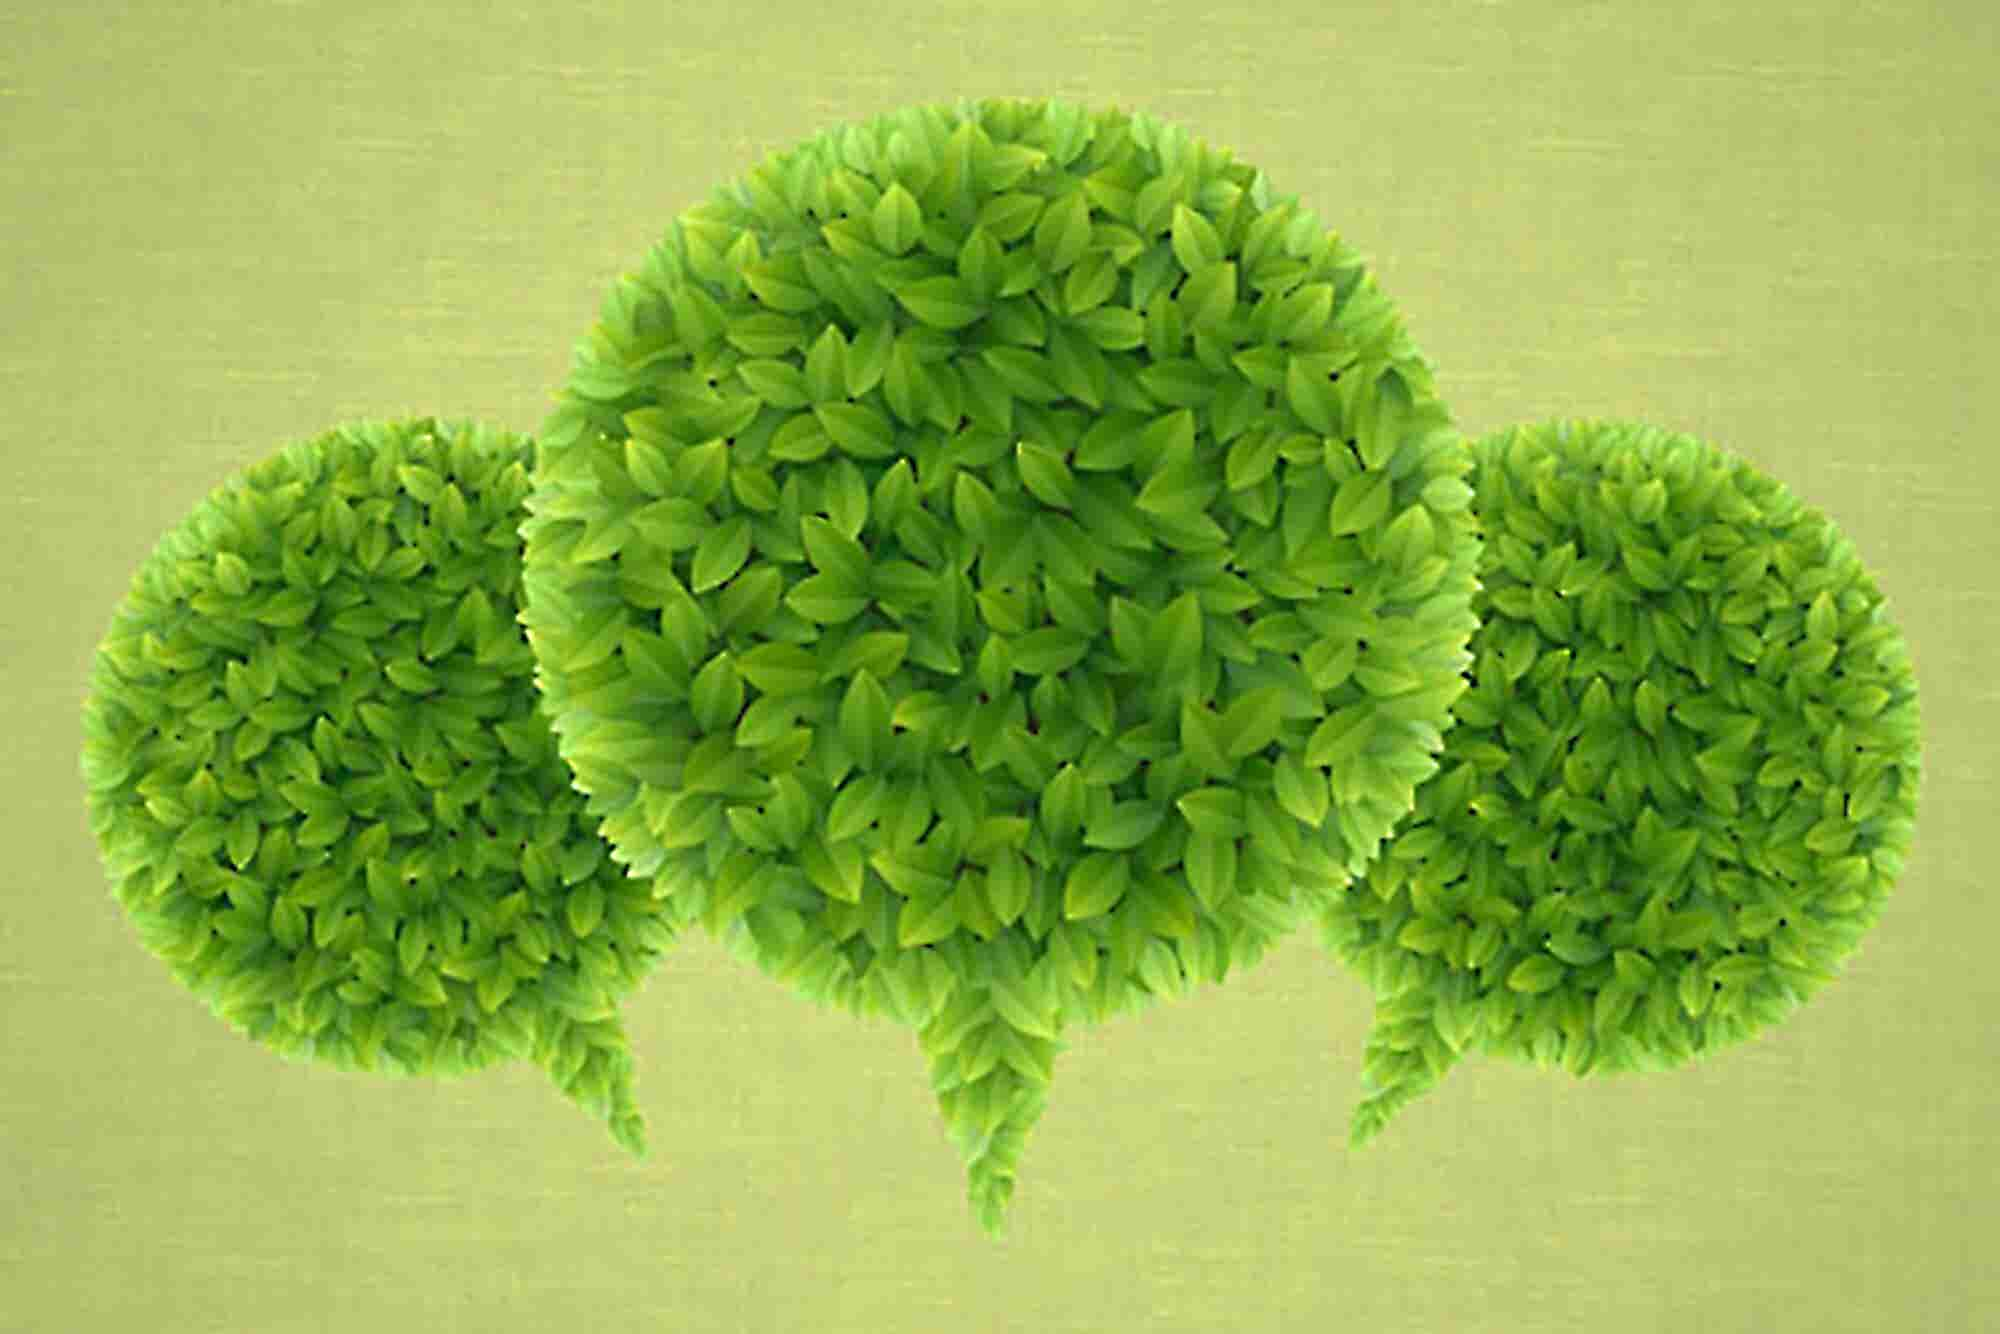 3 Promising Green Startups Attracting Millions From Investors